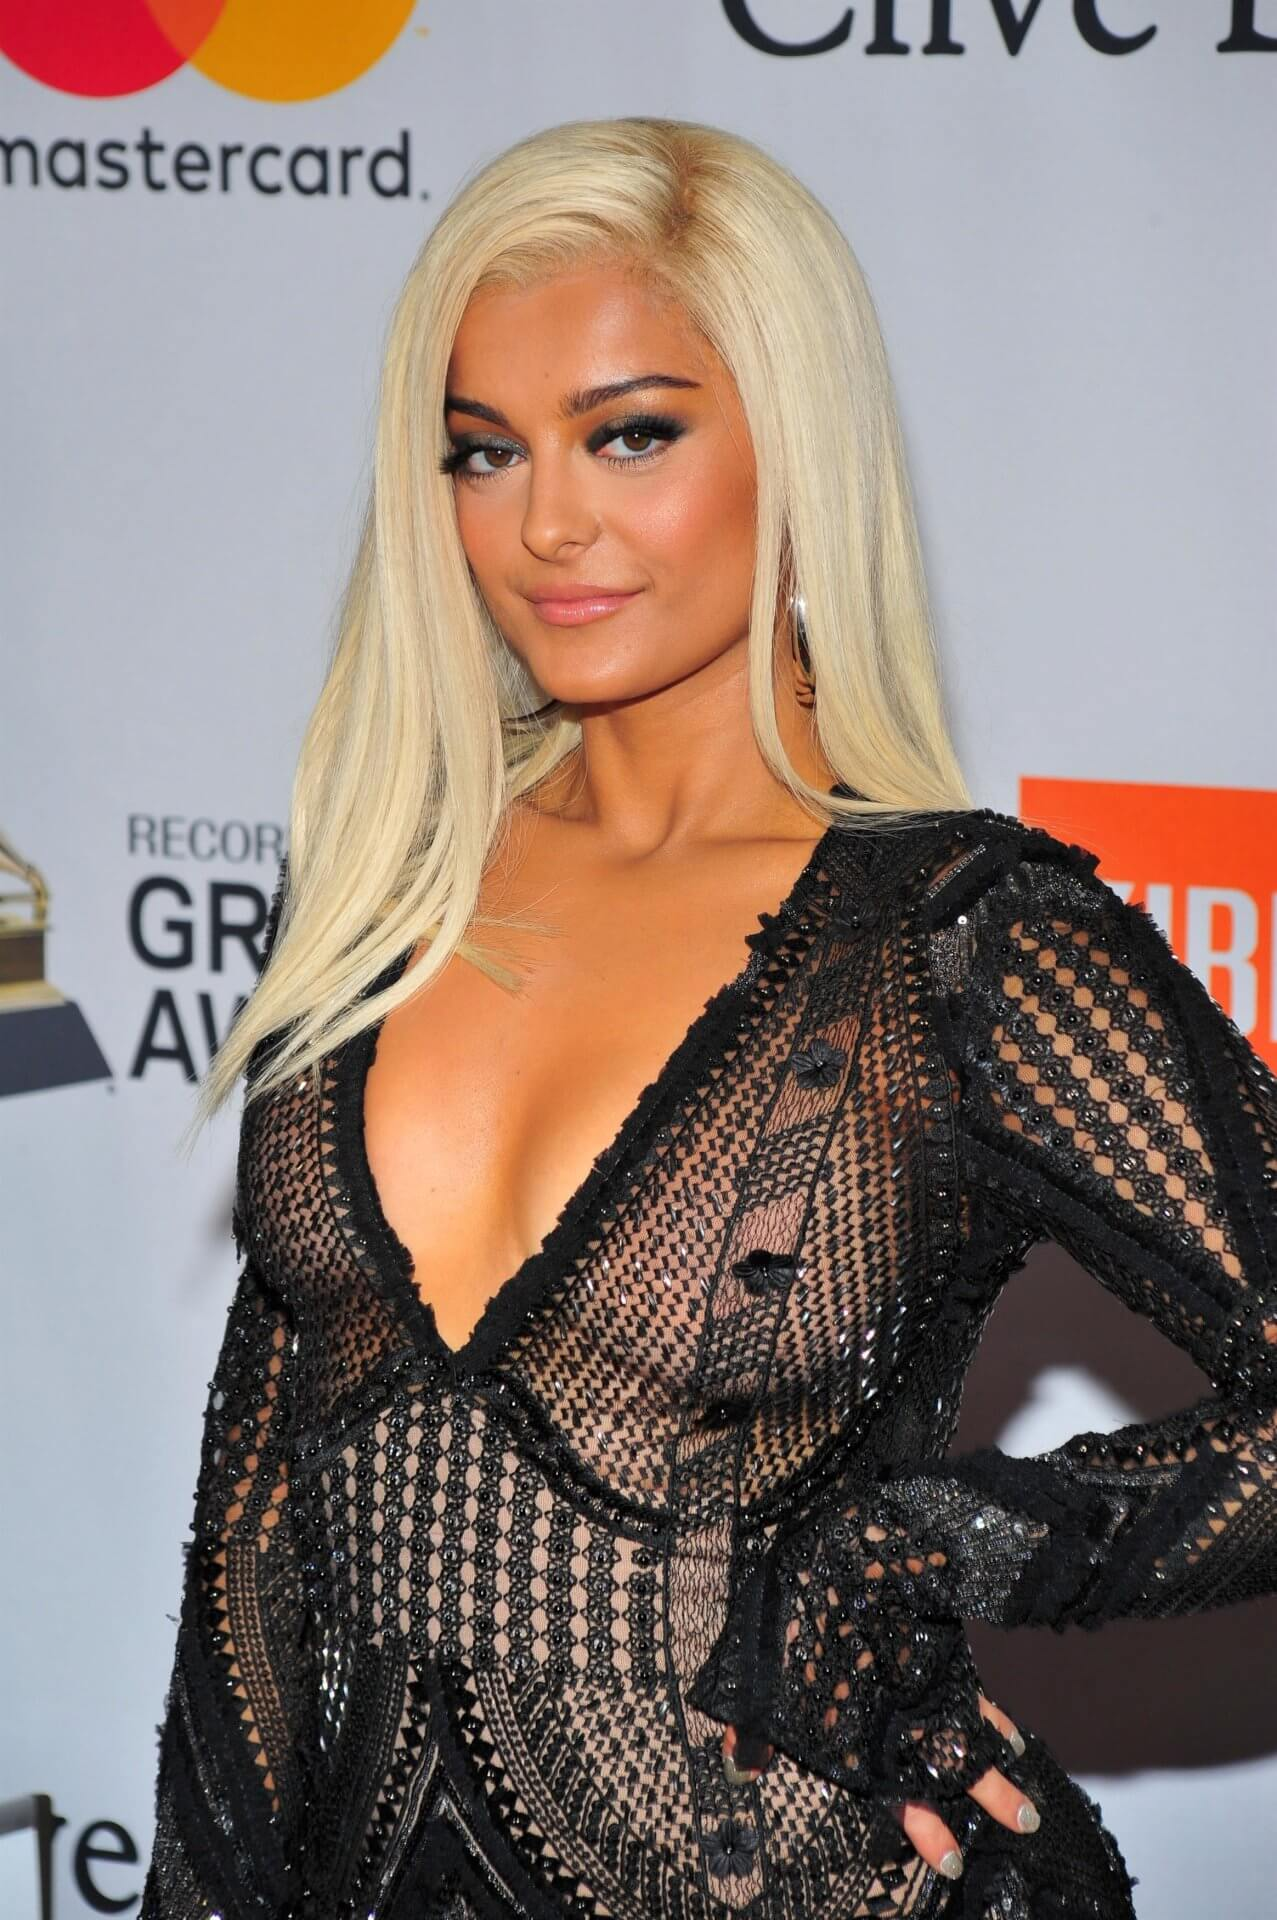 Bebe Rexha sexy cleavage photos